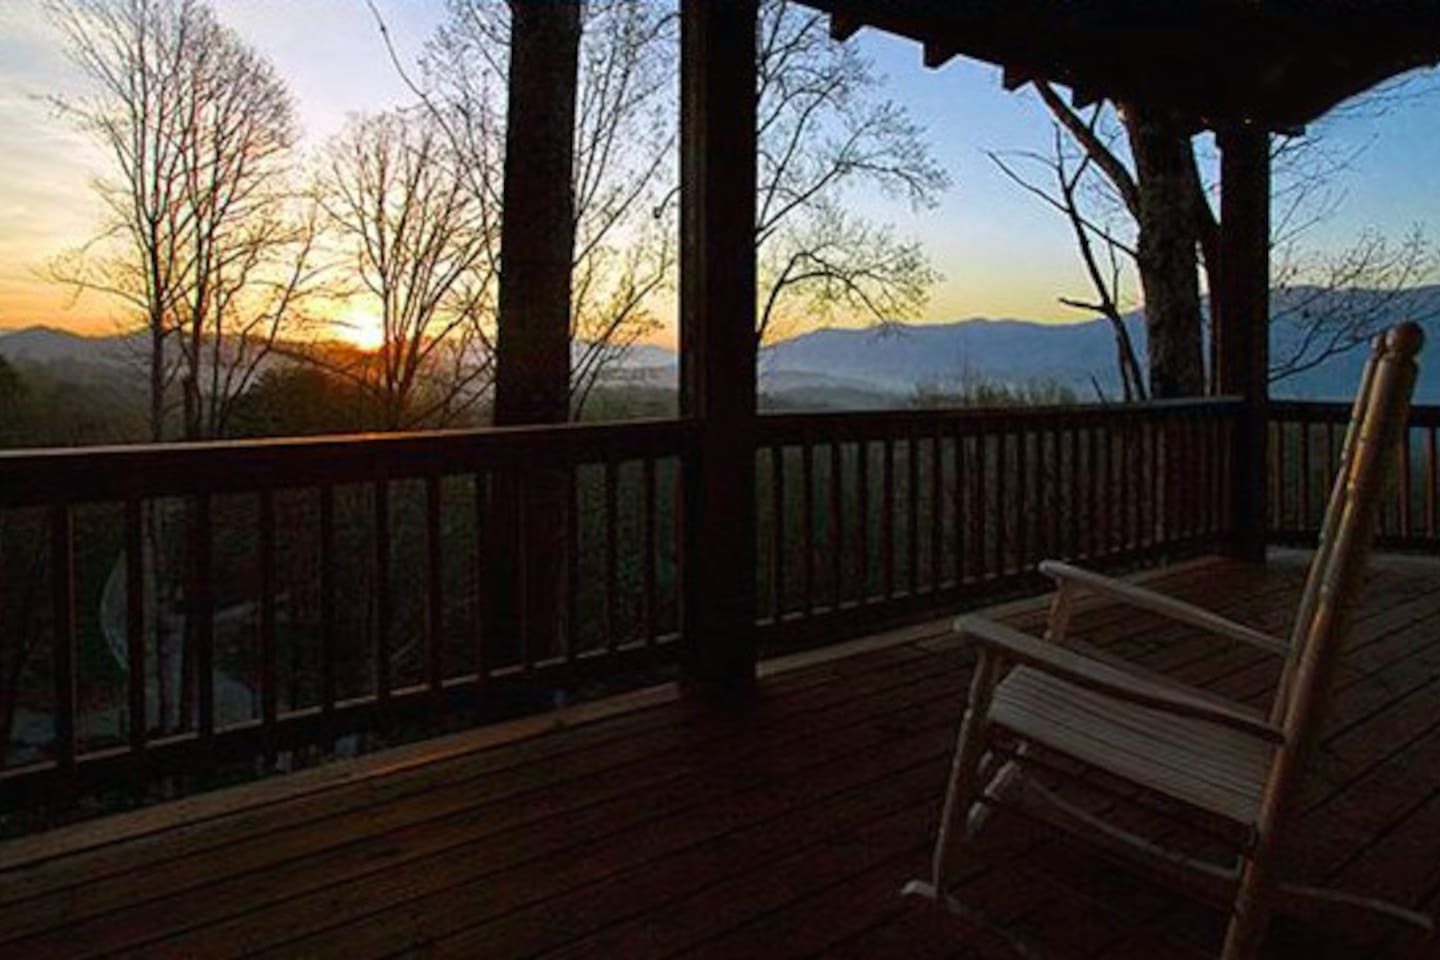 Rocking Chairs on the Deck